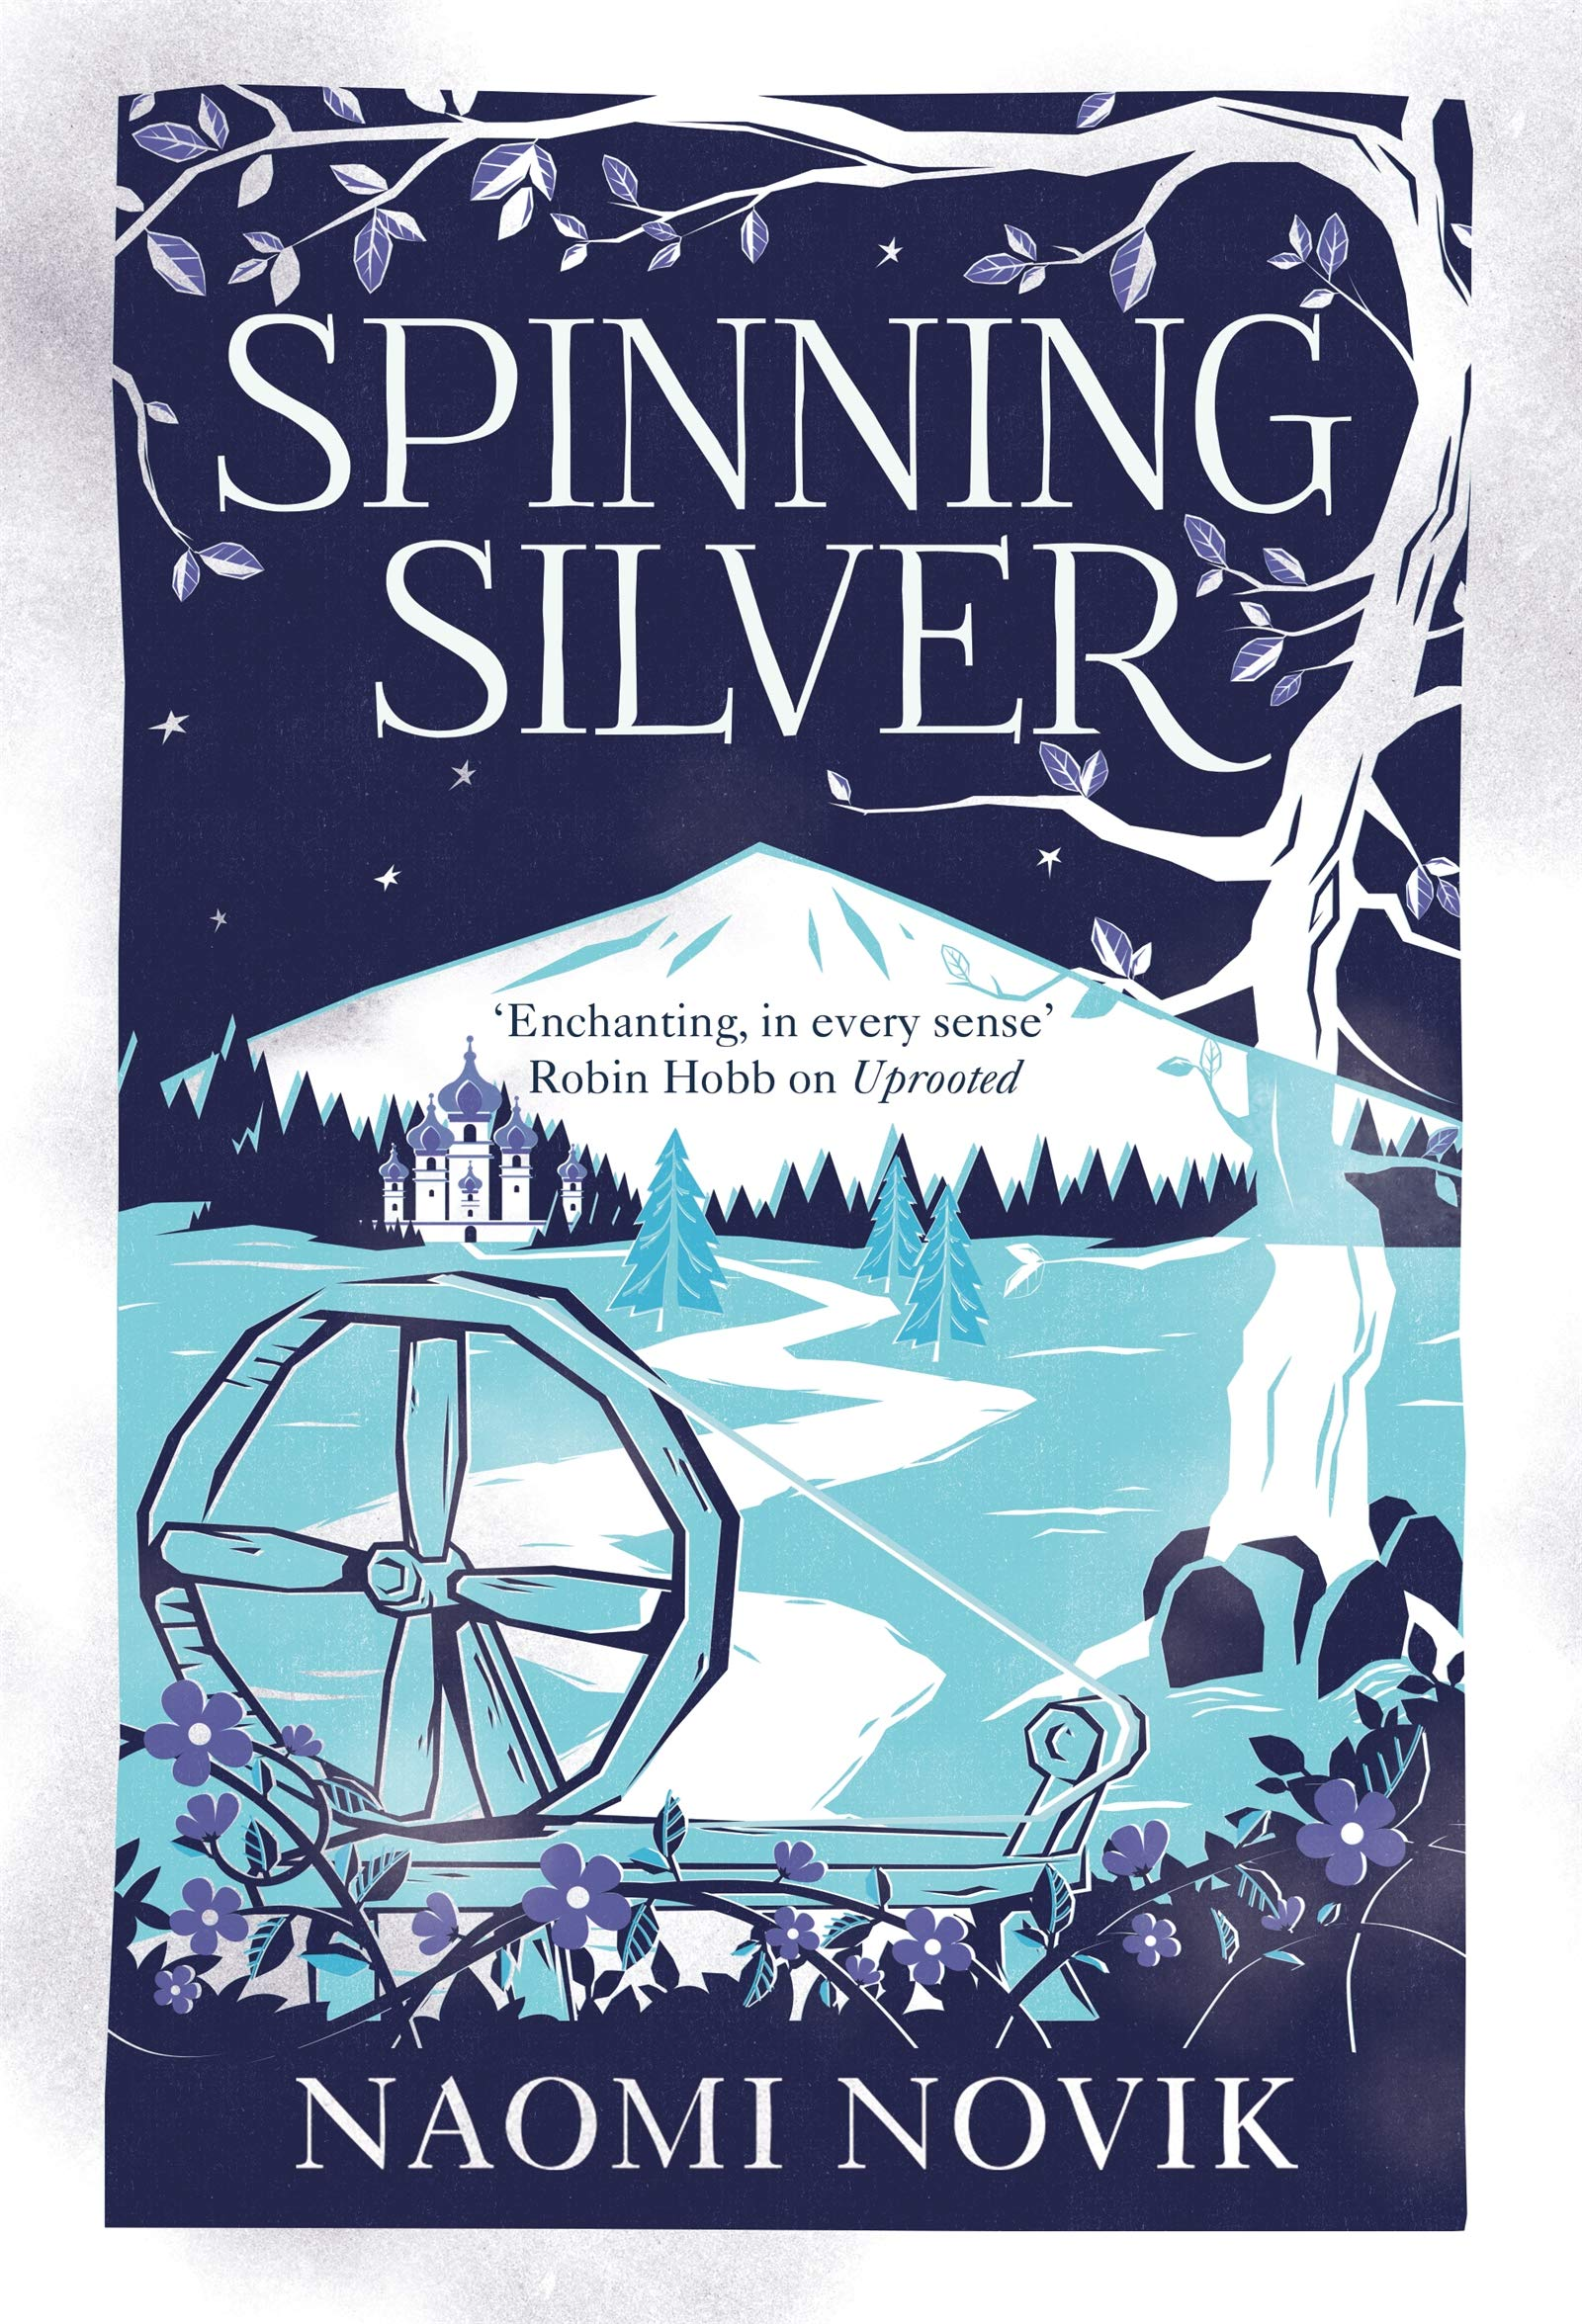 Spinning Silver: Amazon.co.uk: Novik, Naomi: 9781509899012: Books